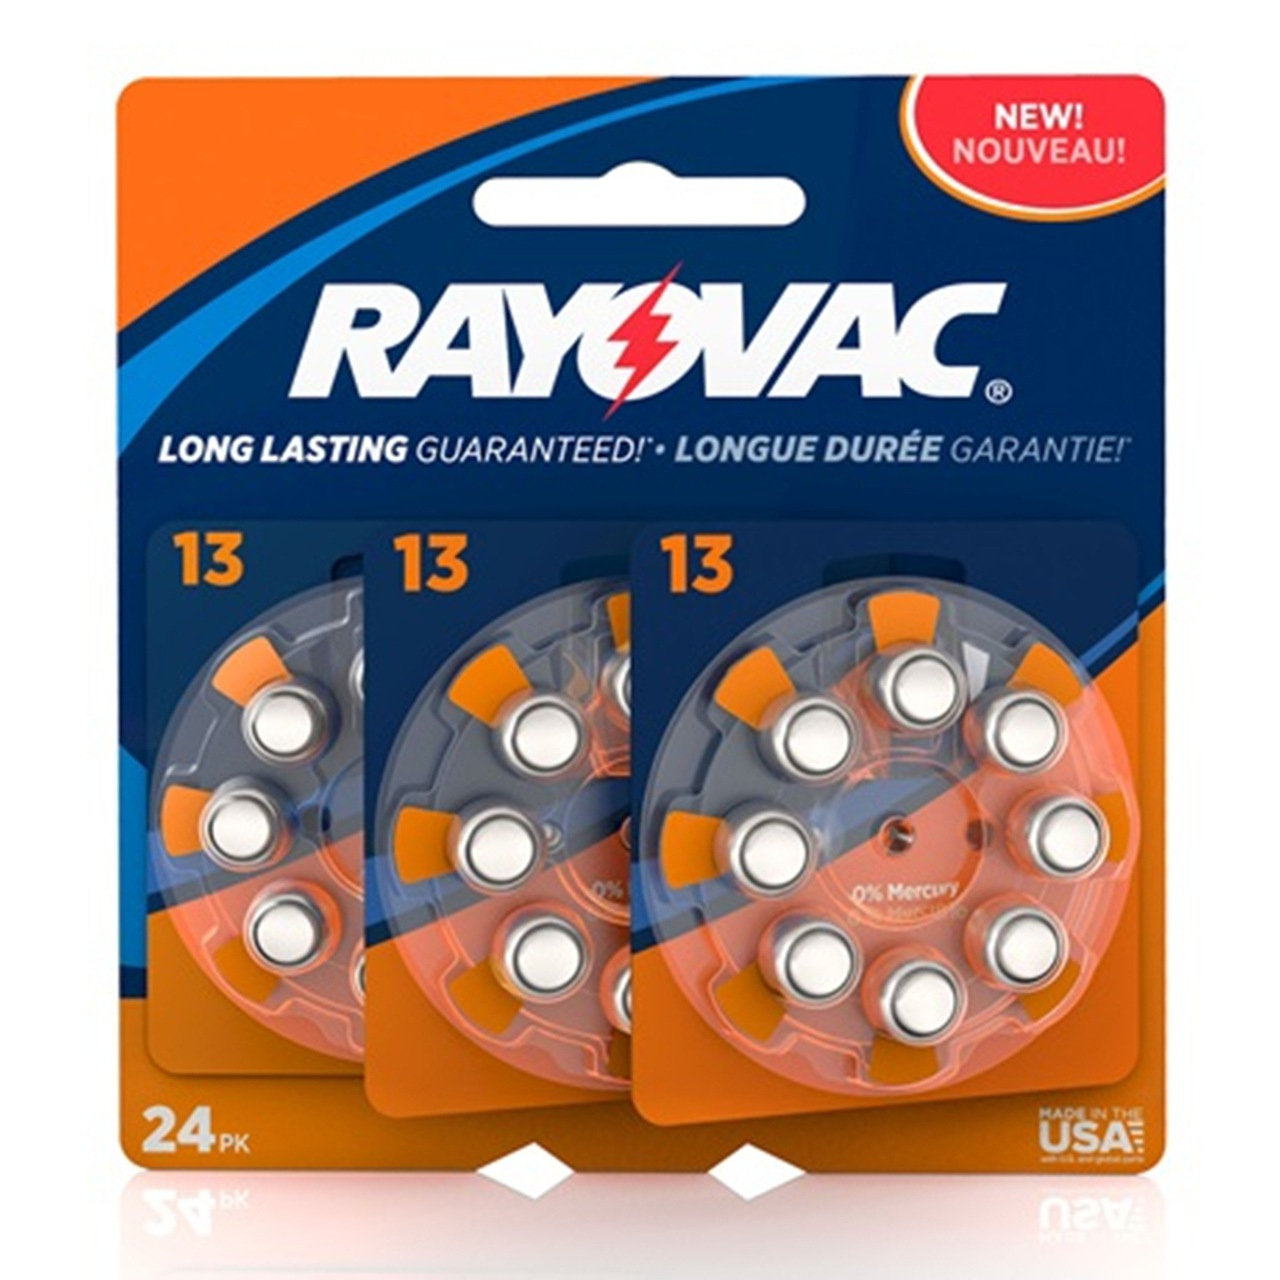 Rayovac Hearing Aid Batteries Size 13 - 24 Batteries + FREE SHIPPING!